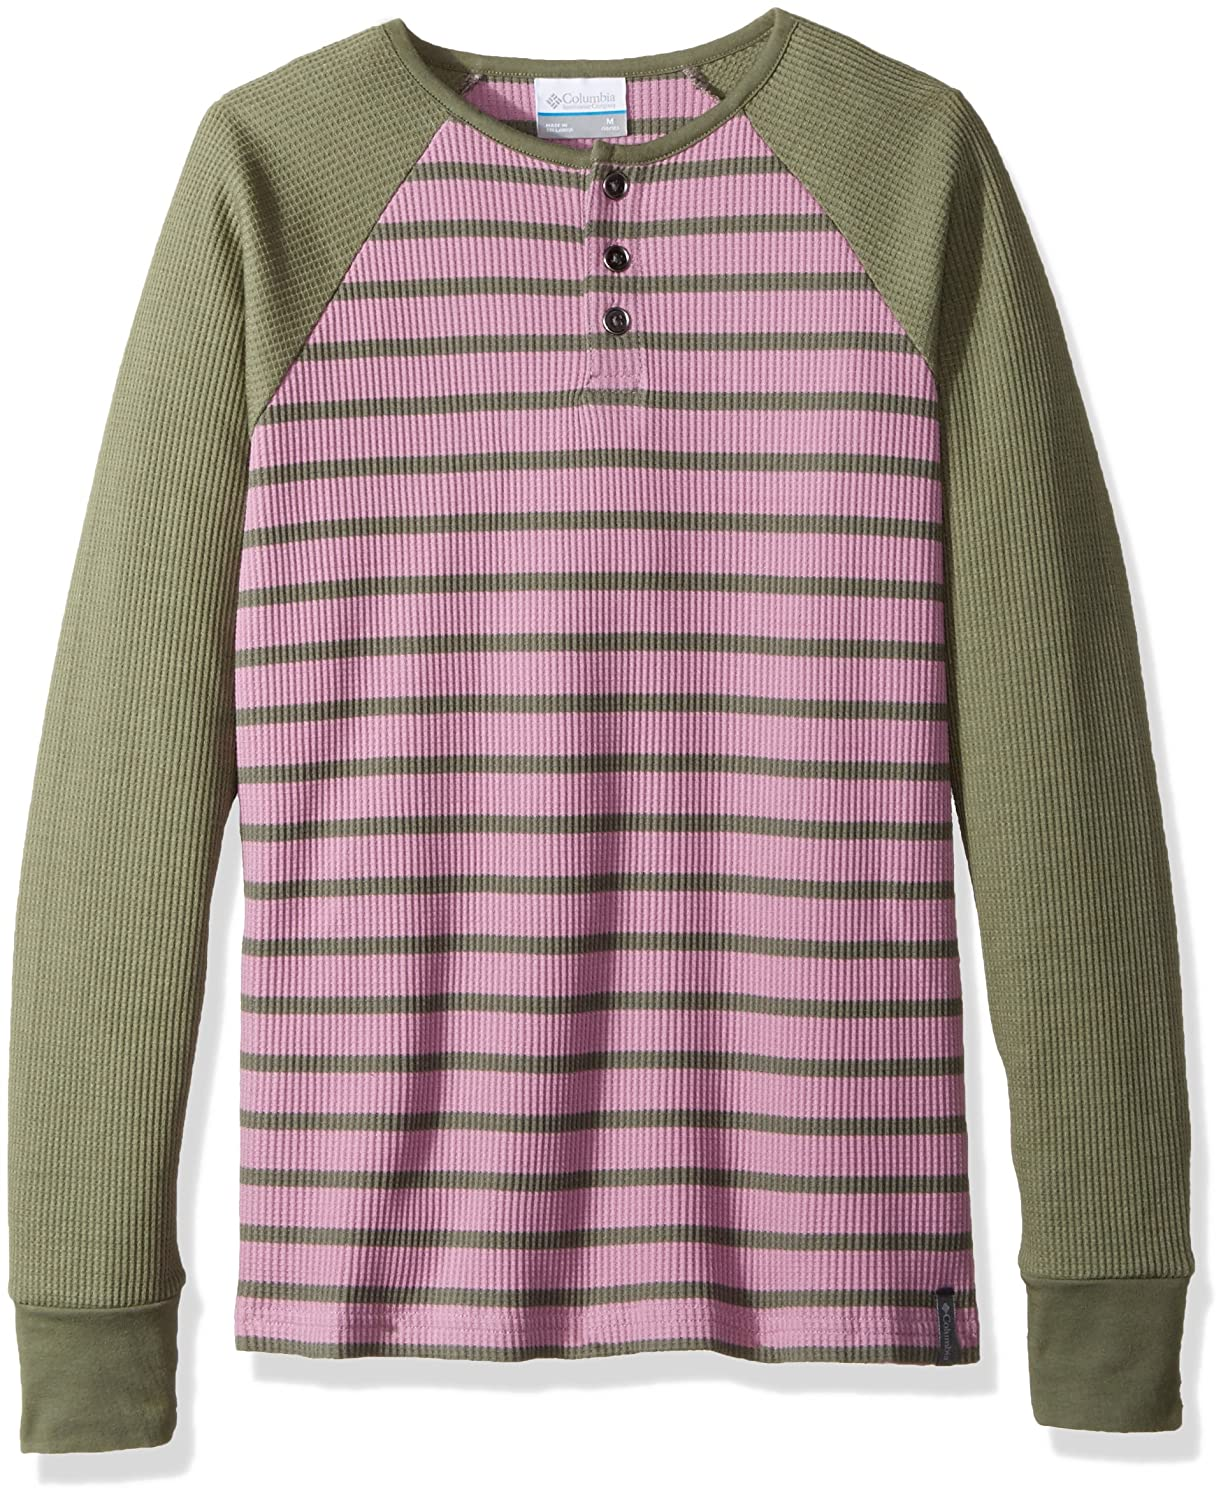 Columbia Boys Trulli Trails Thermal Henley